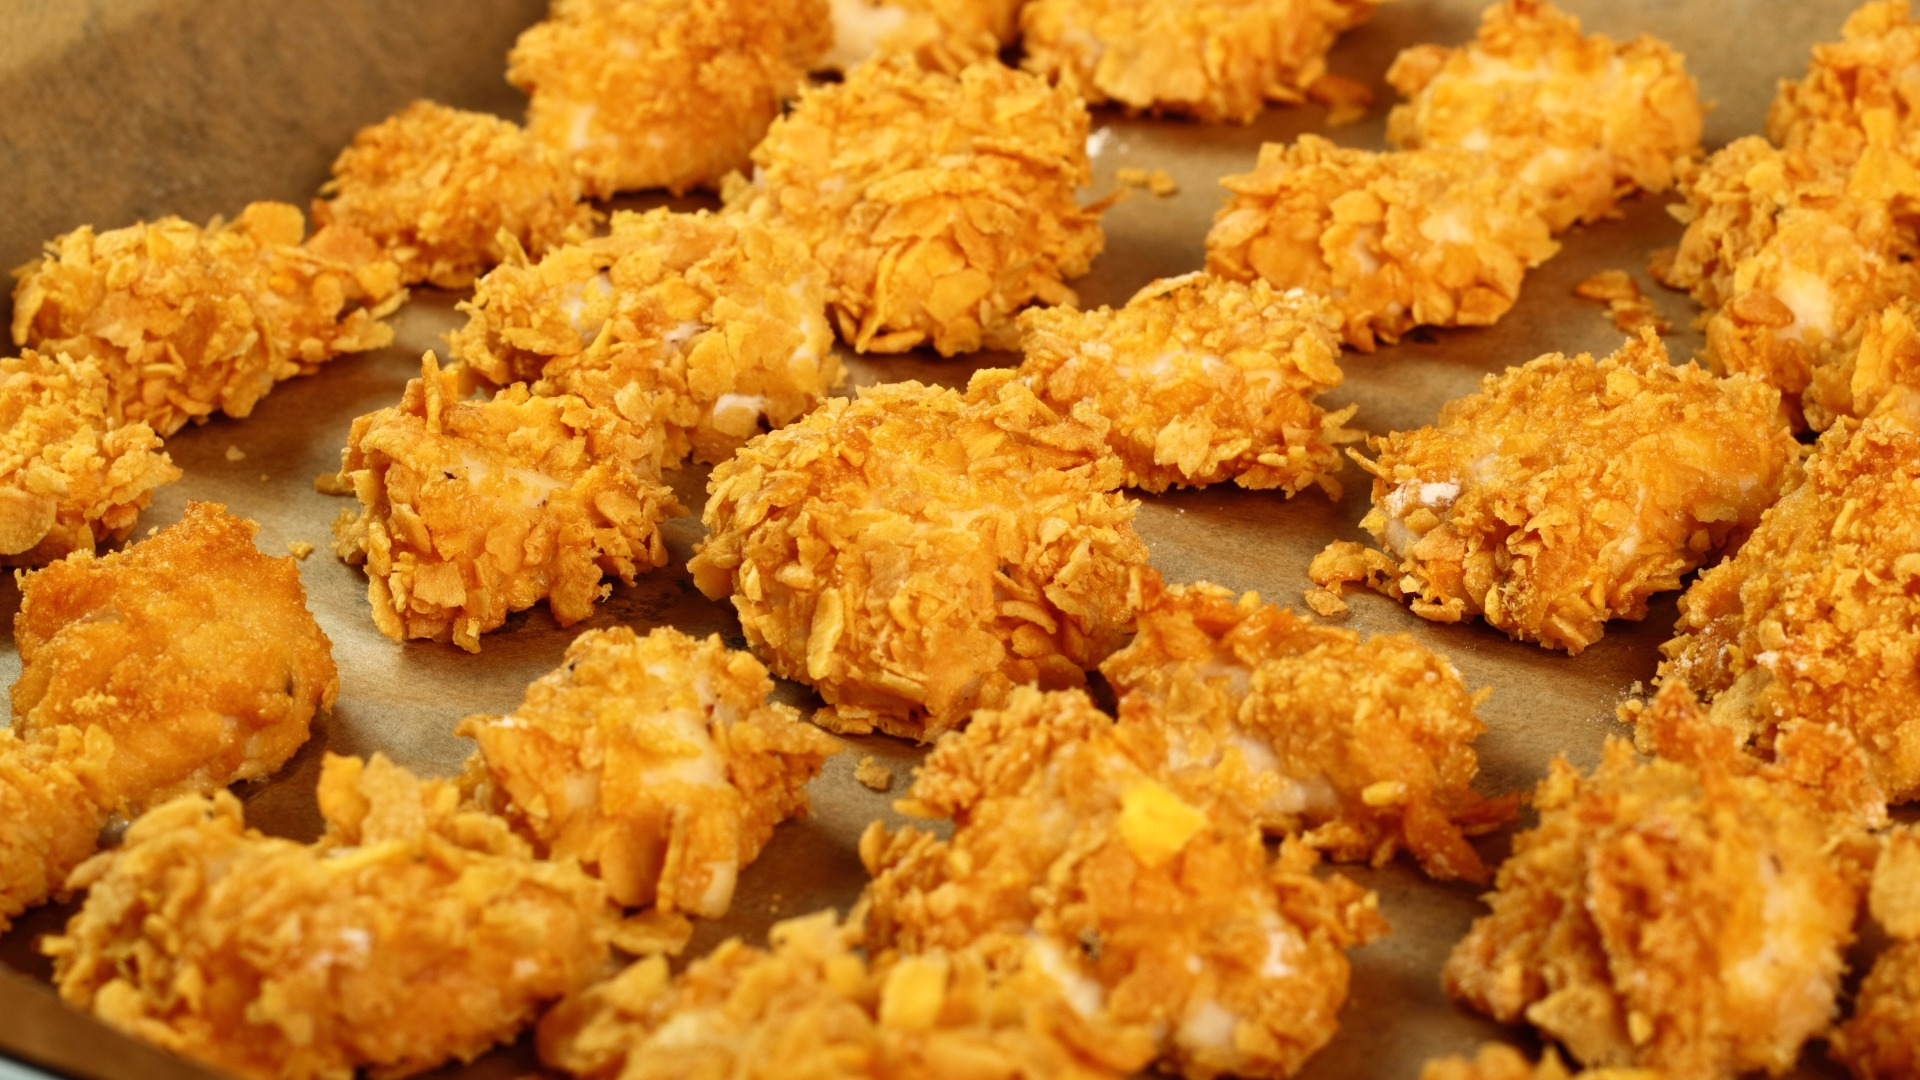 crunchy chicken pieces on a baking sheet